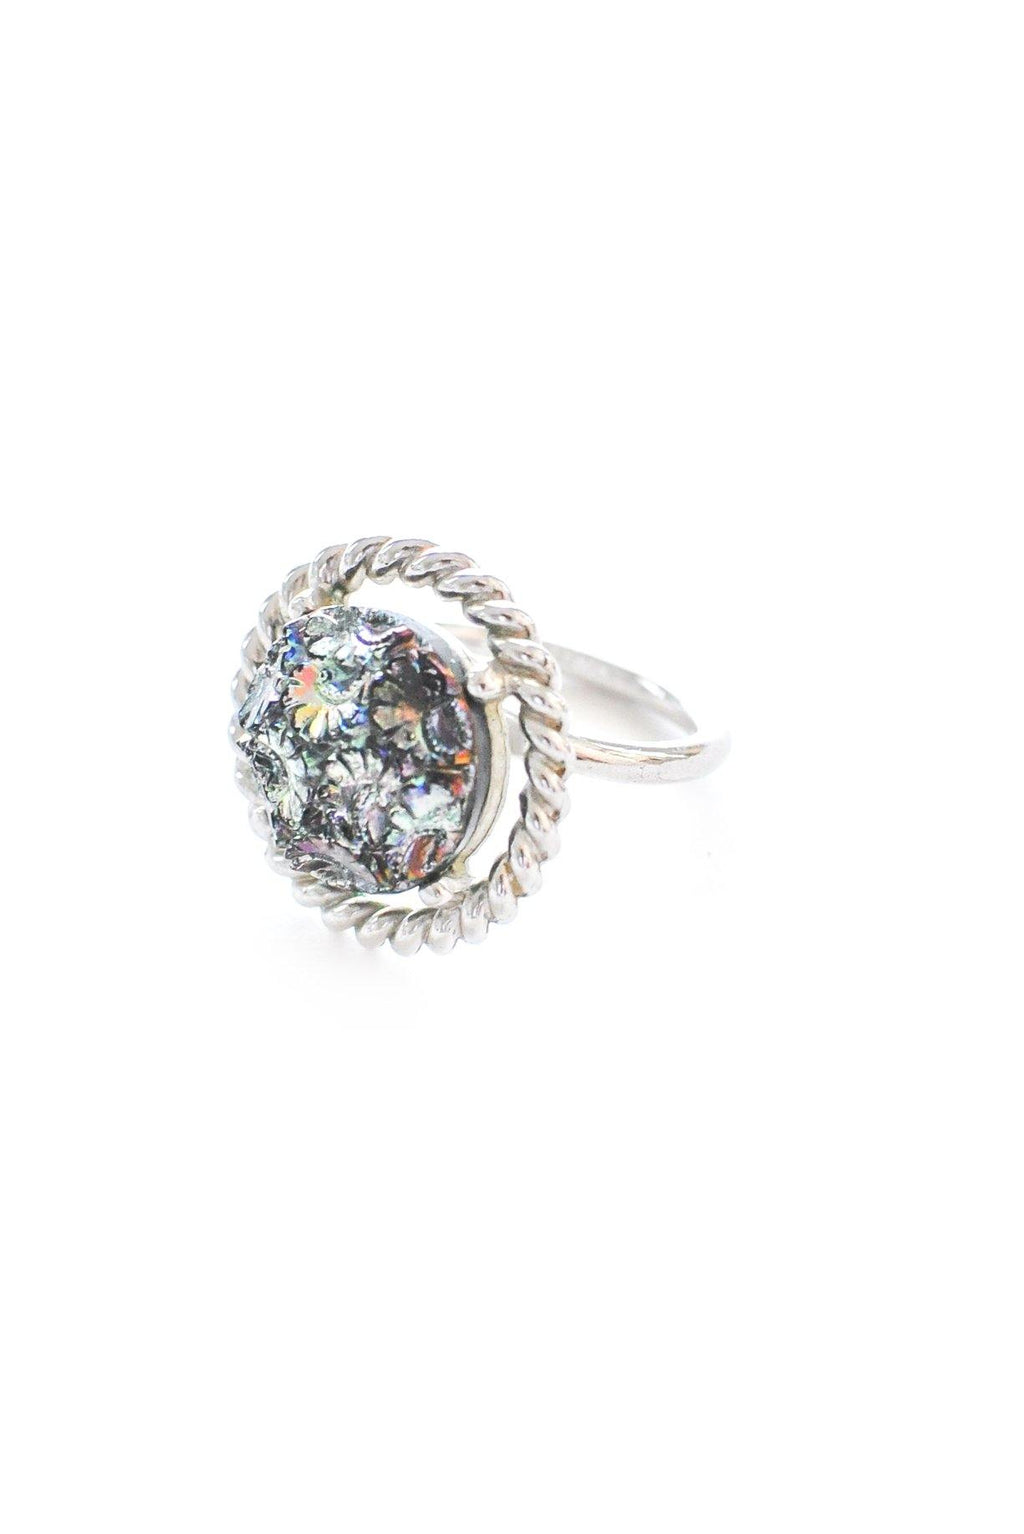 Adjustable Floral Rhinestone Cocktail Ring